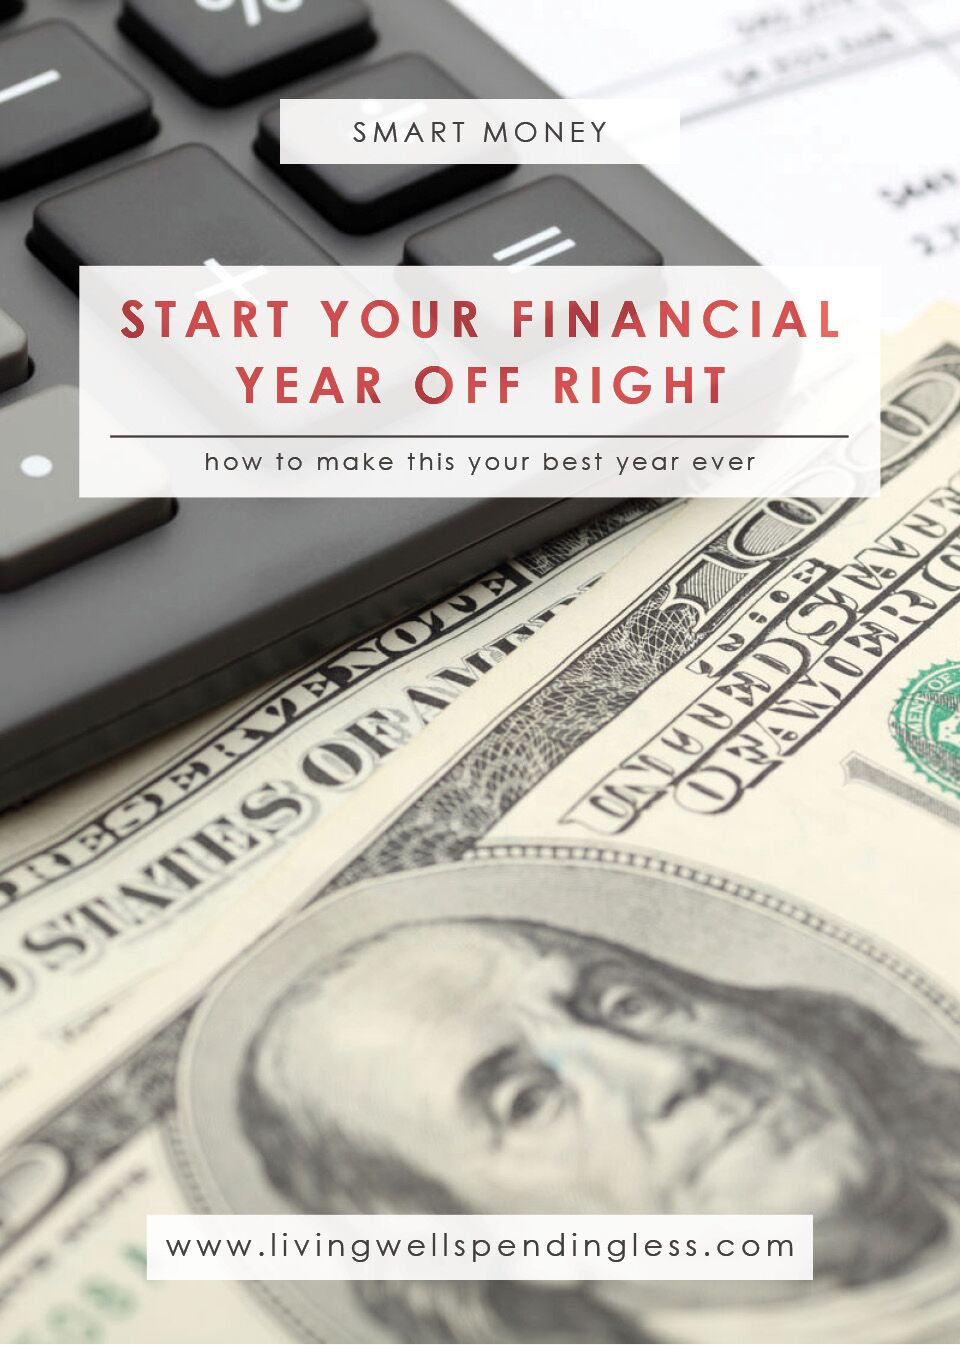 Use these tips to start your financial year off right.